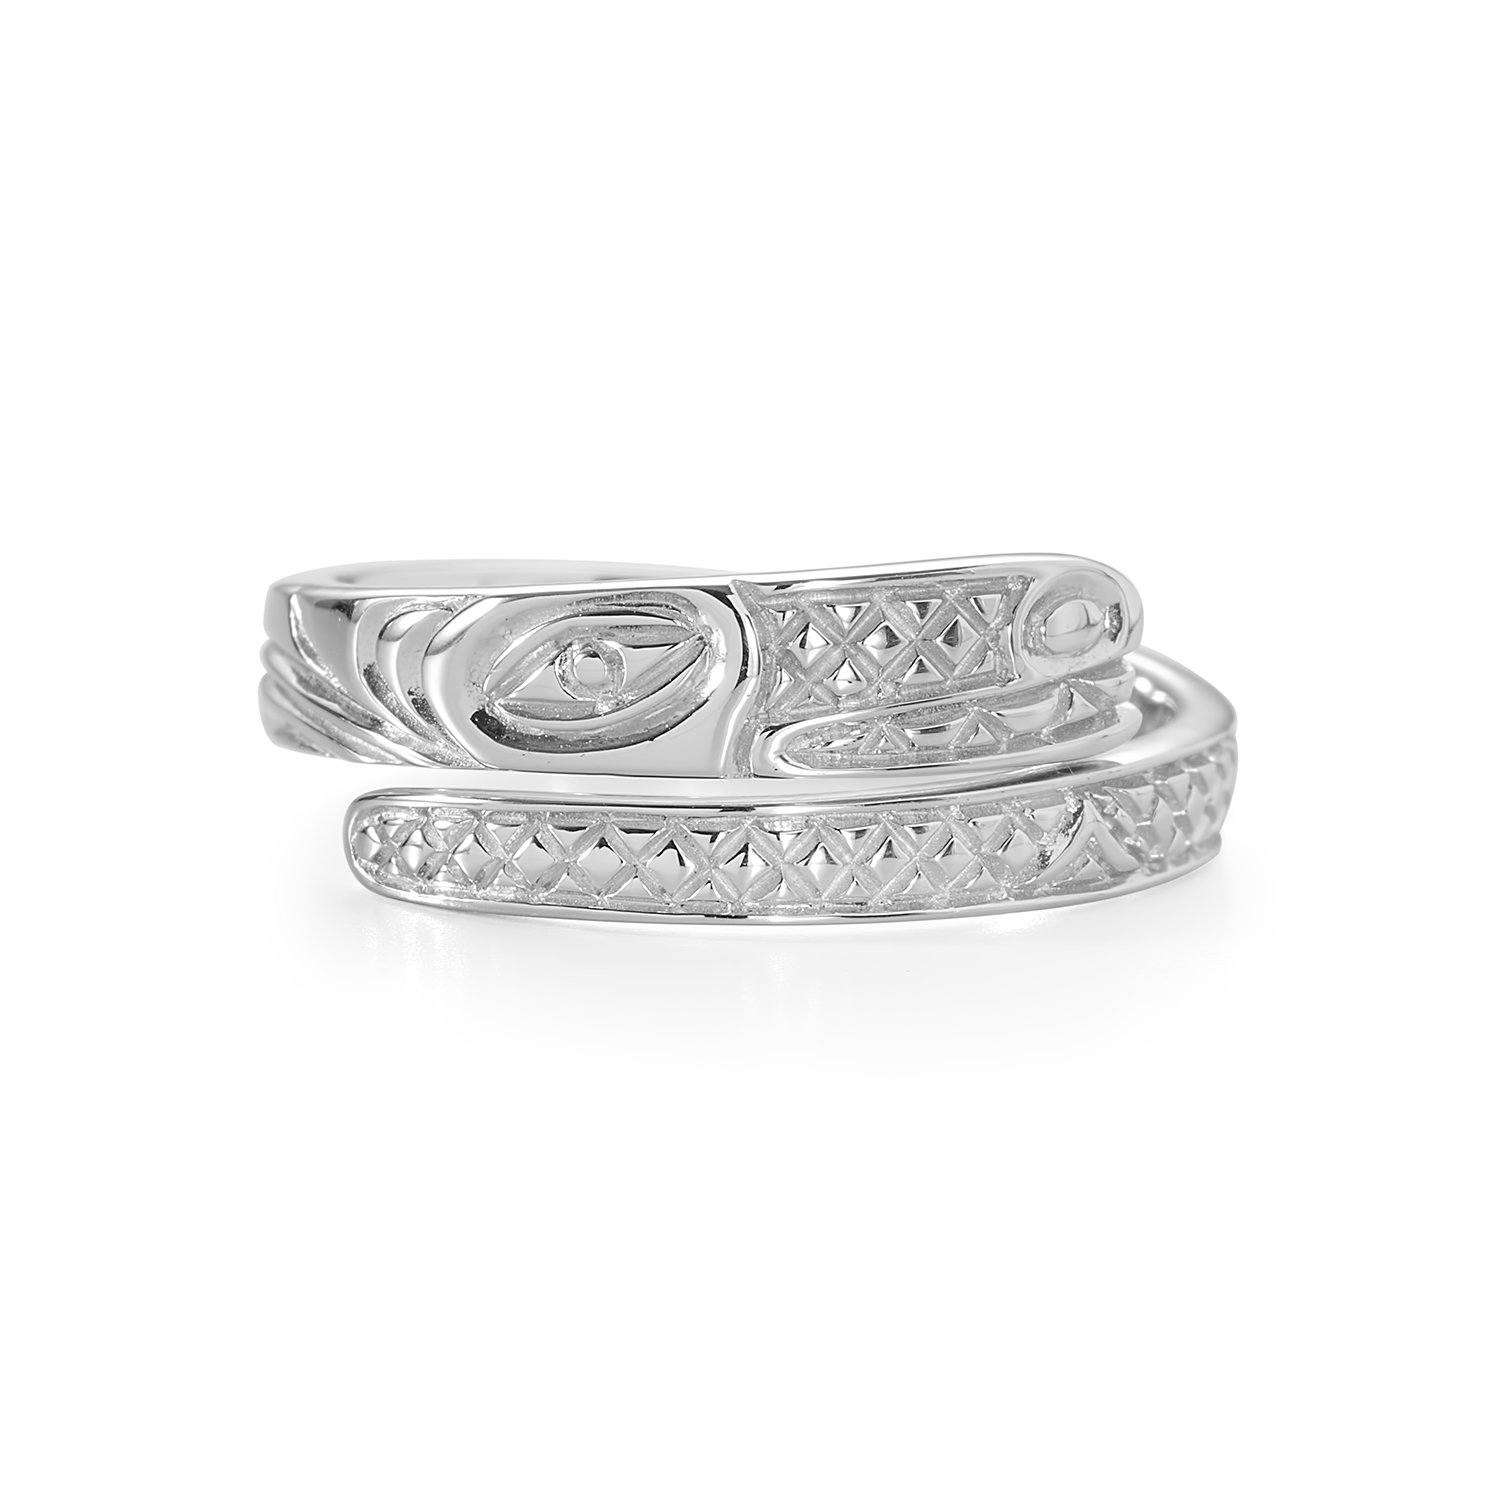 Adjustable Crocodile Ring